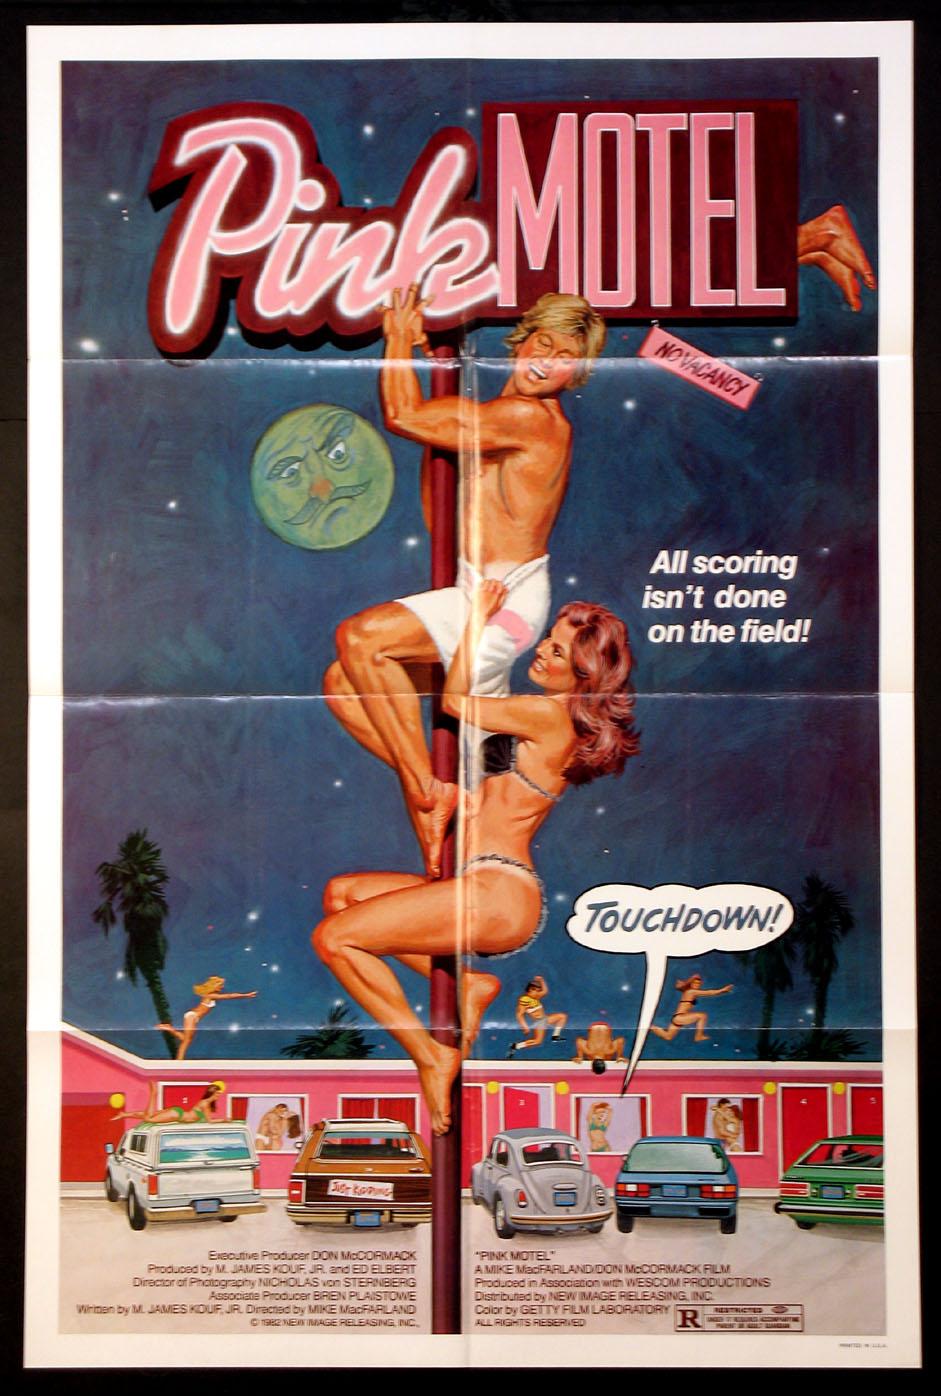 PINK MOTEL @ FilmPosters.com